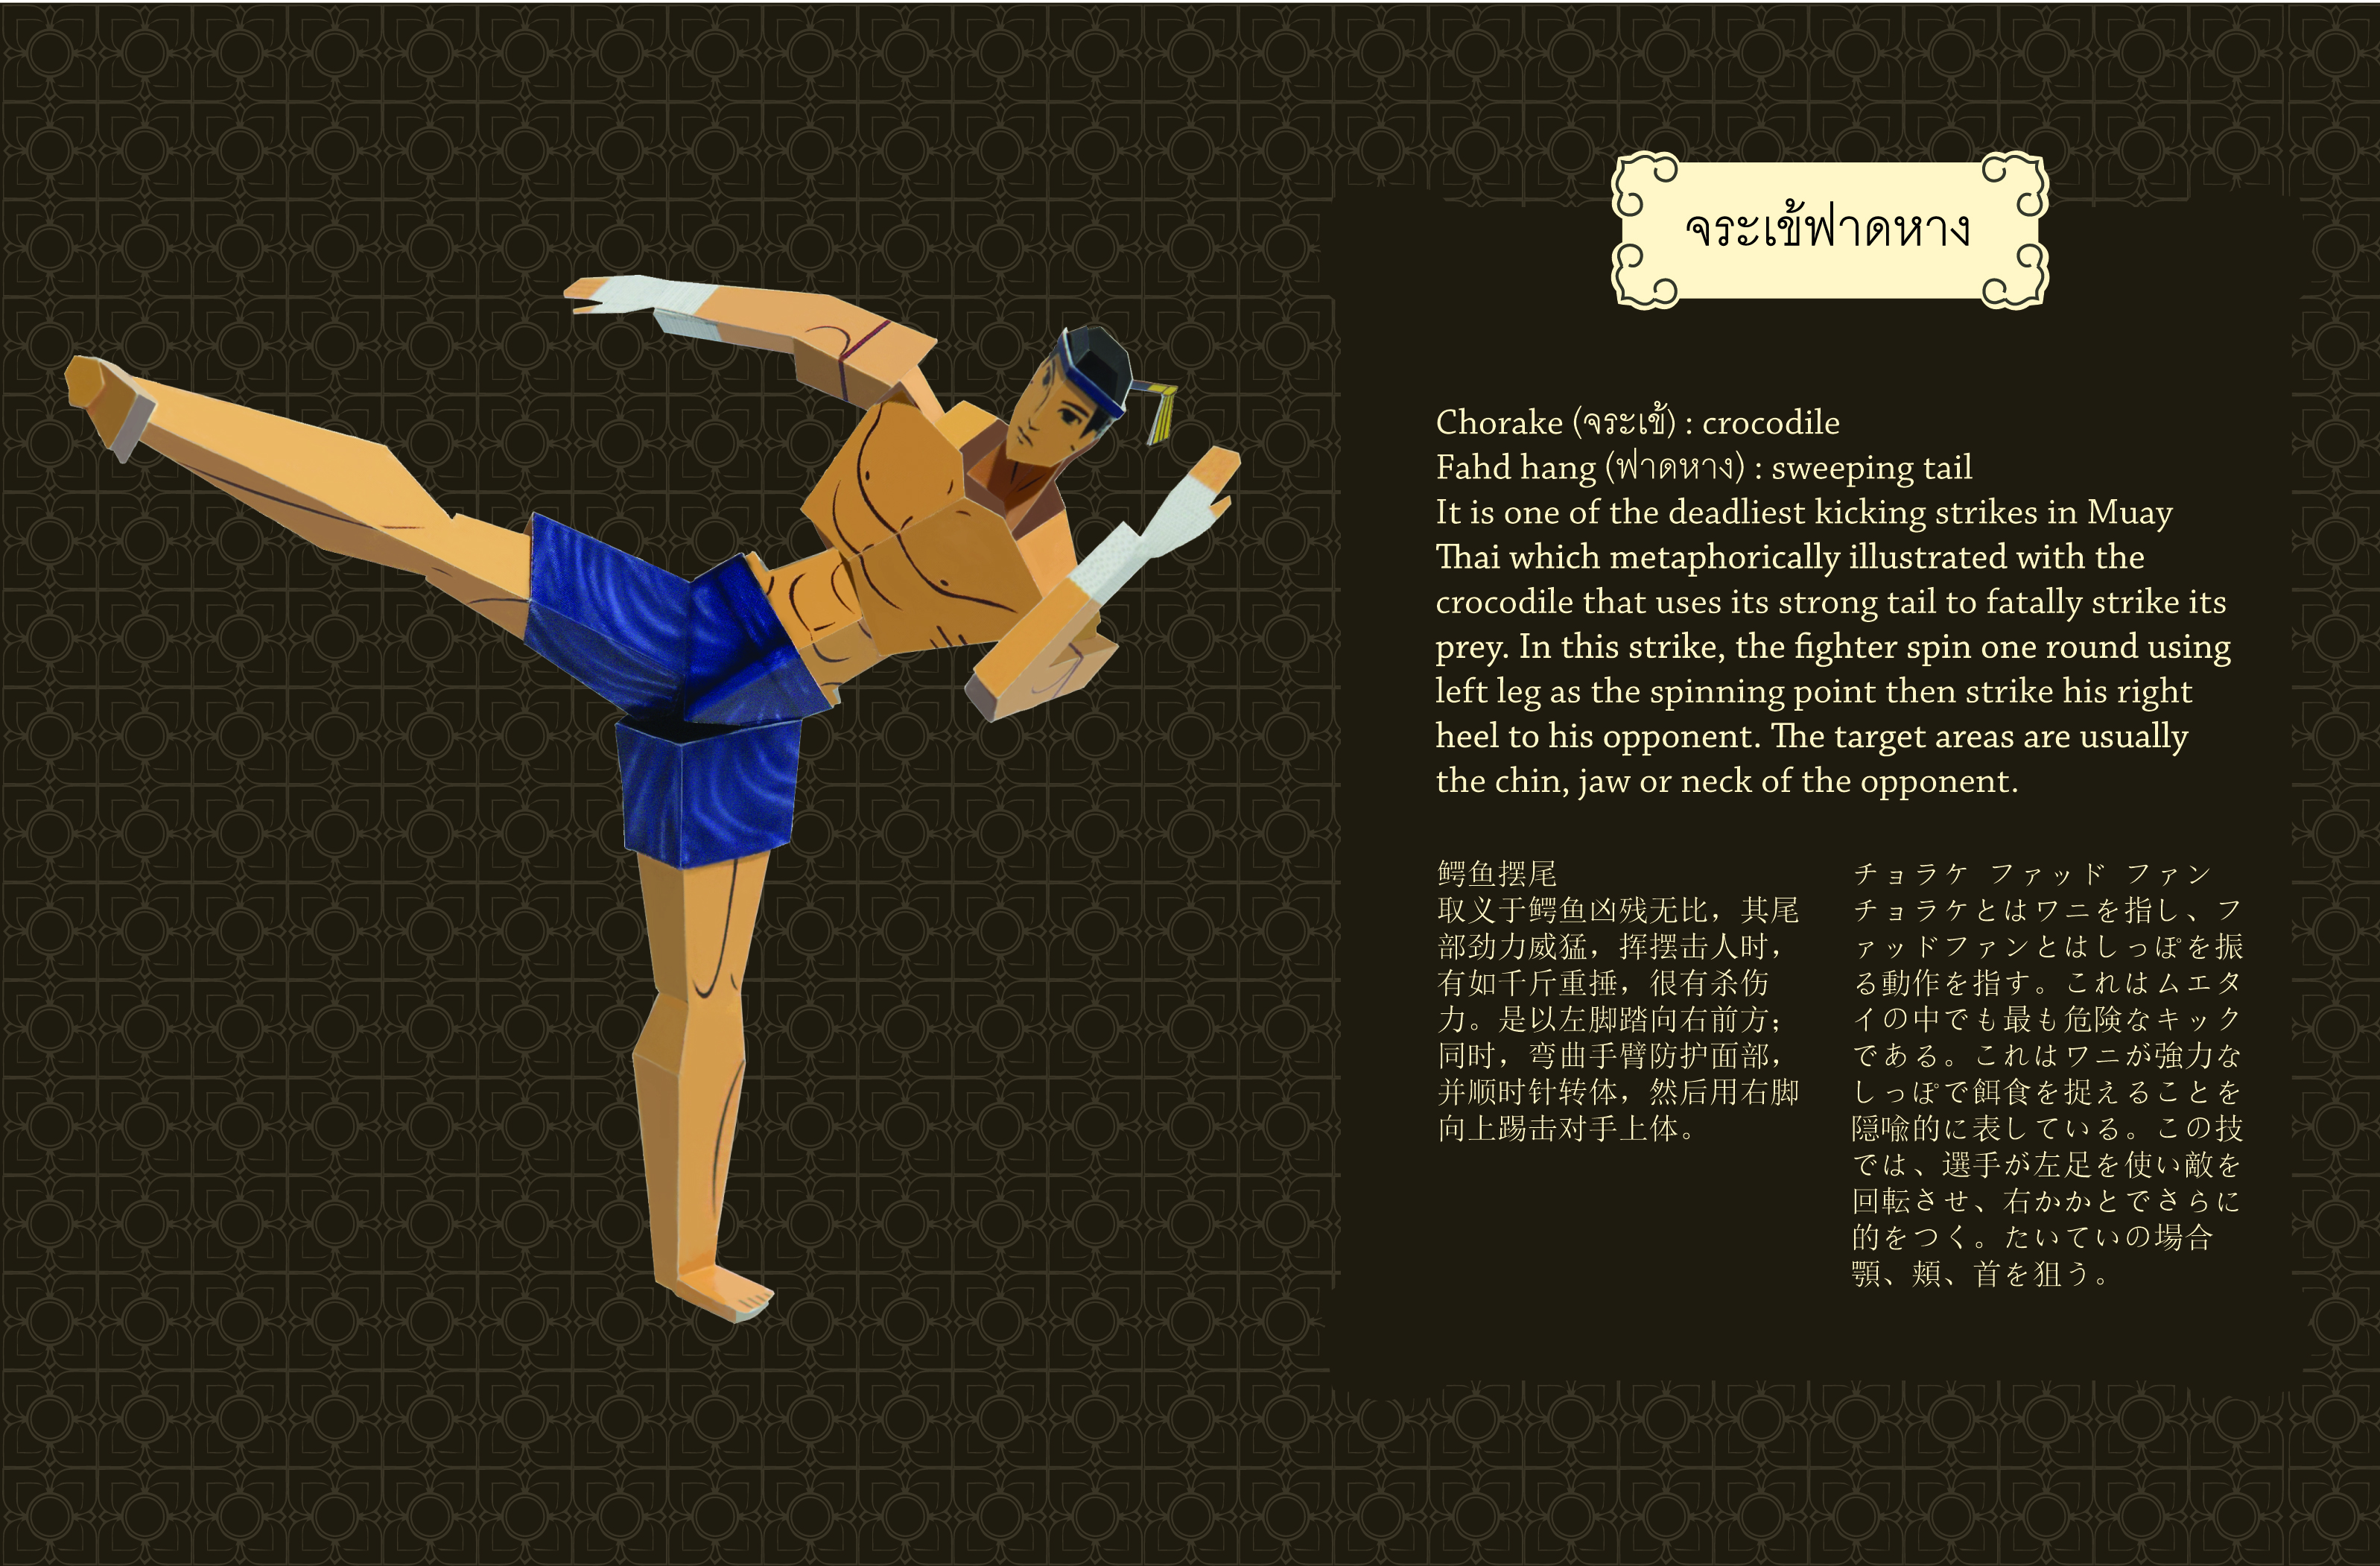 Each Muay Thai posture's information